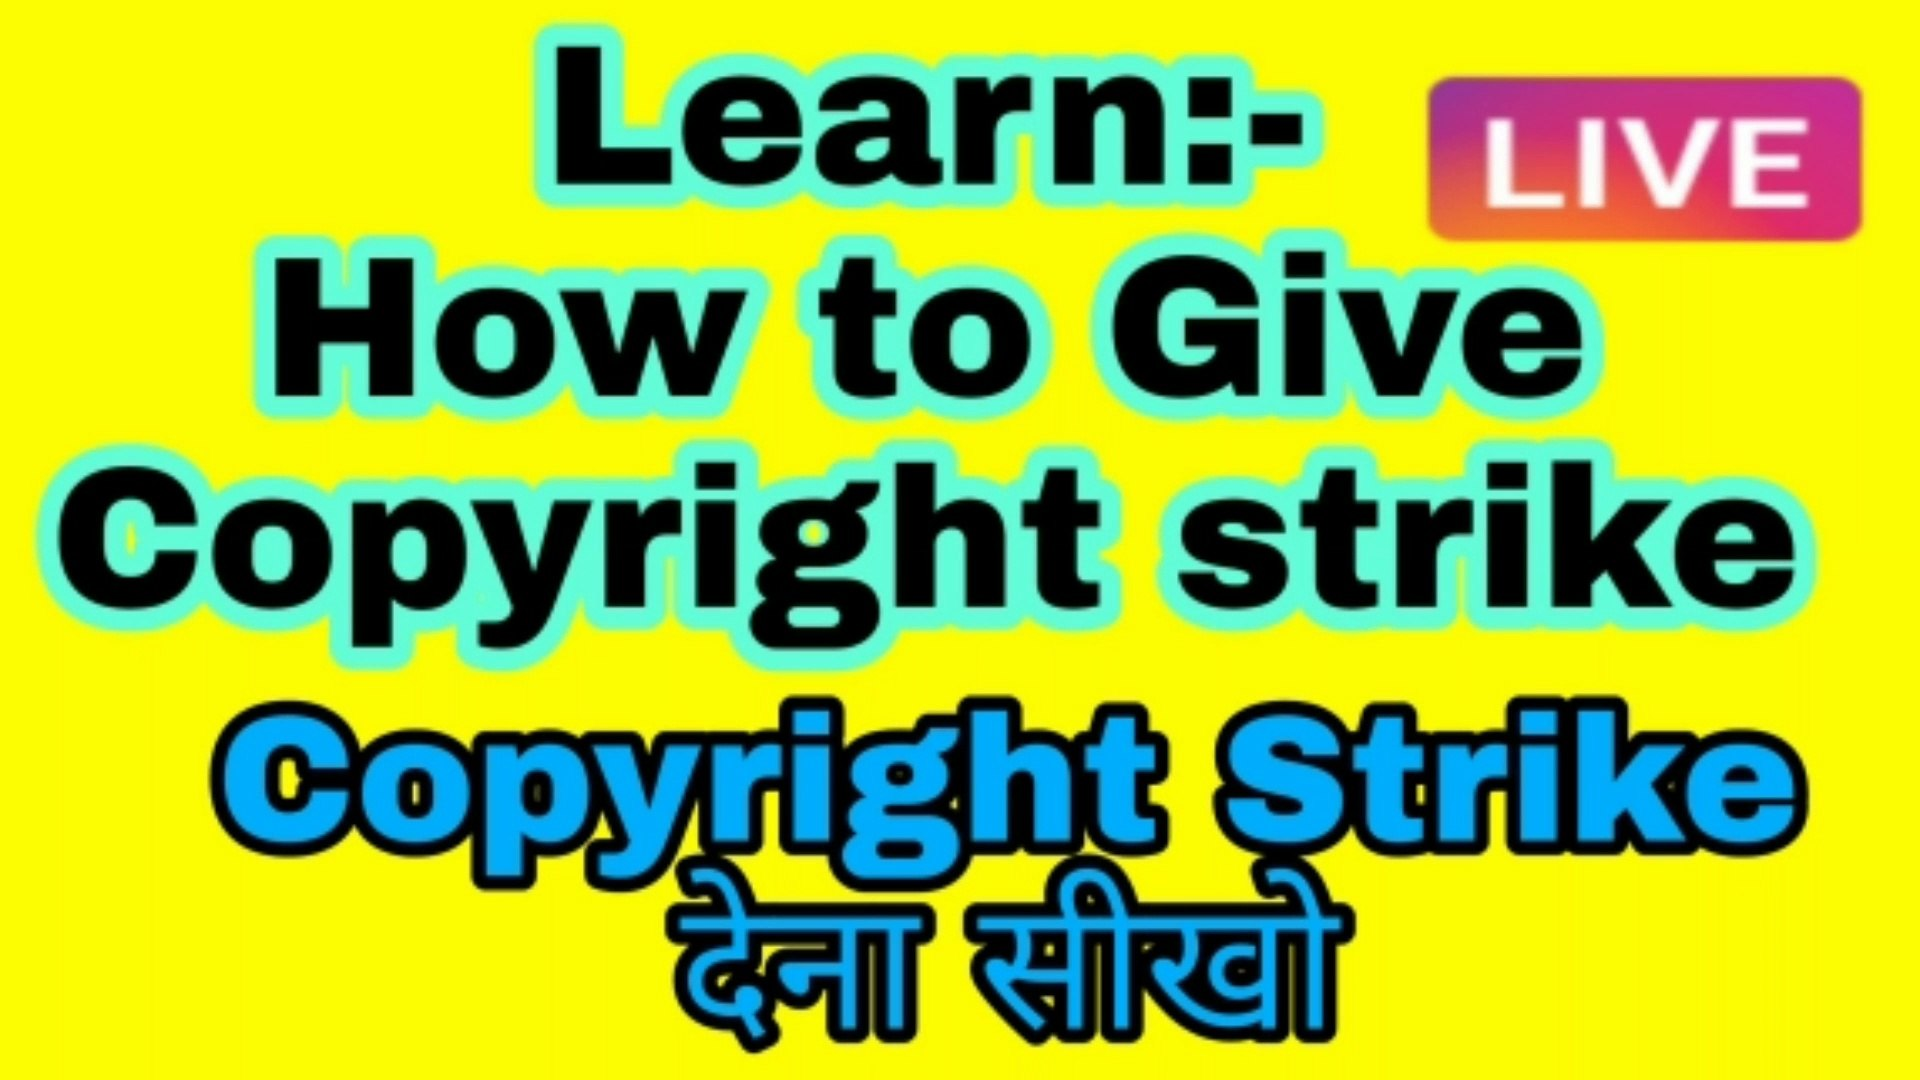 Copyright strike Dena sikho Live | how to give copyright strike | Copyright match tool tutorial 2020